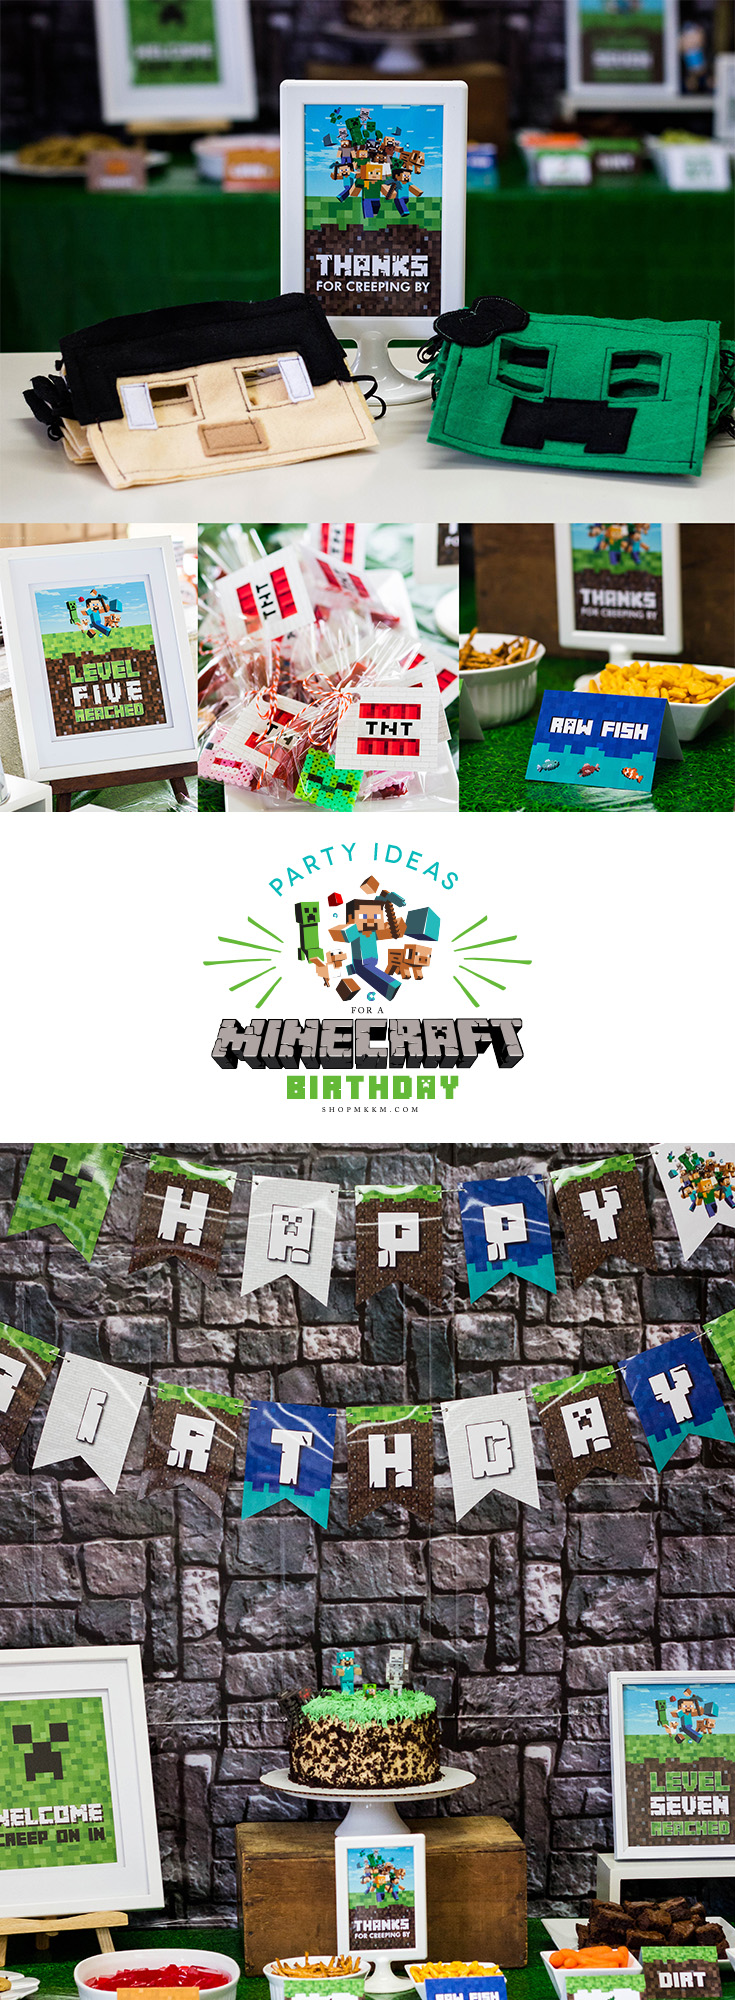 Minecraft birthday party planning ideas. Check out the blog for free minecraft printables and lots of party ideas to make your party a blast!